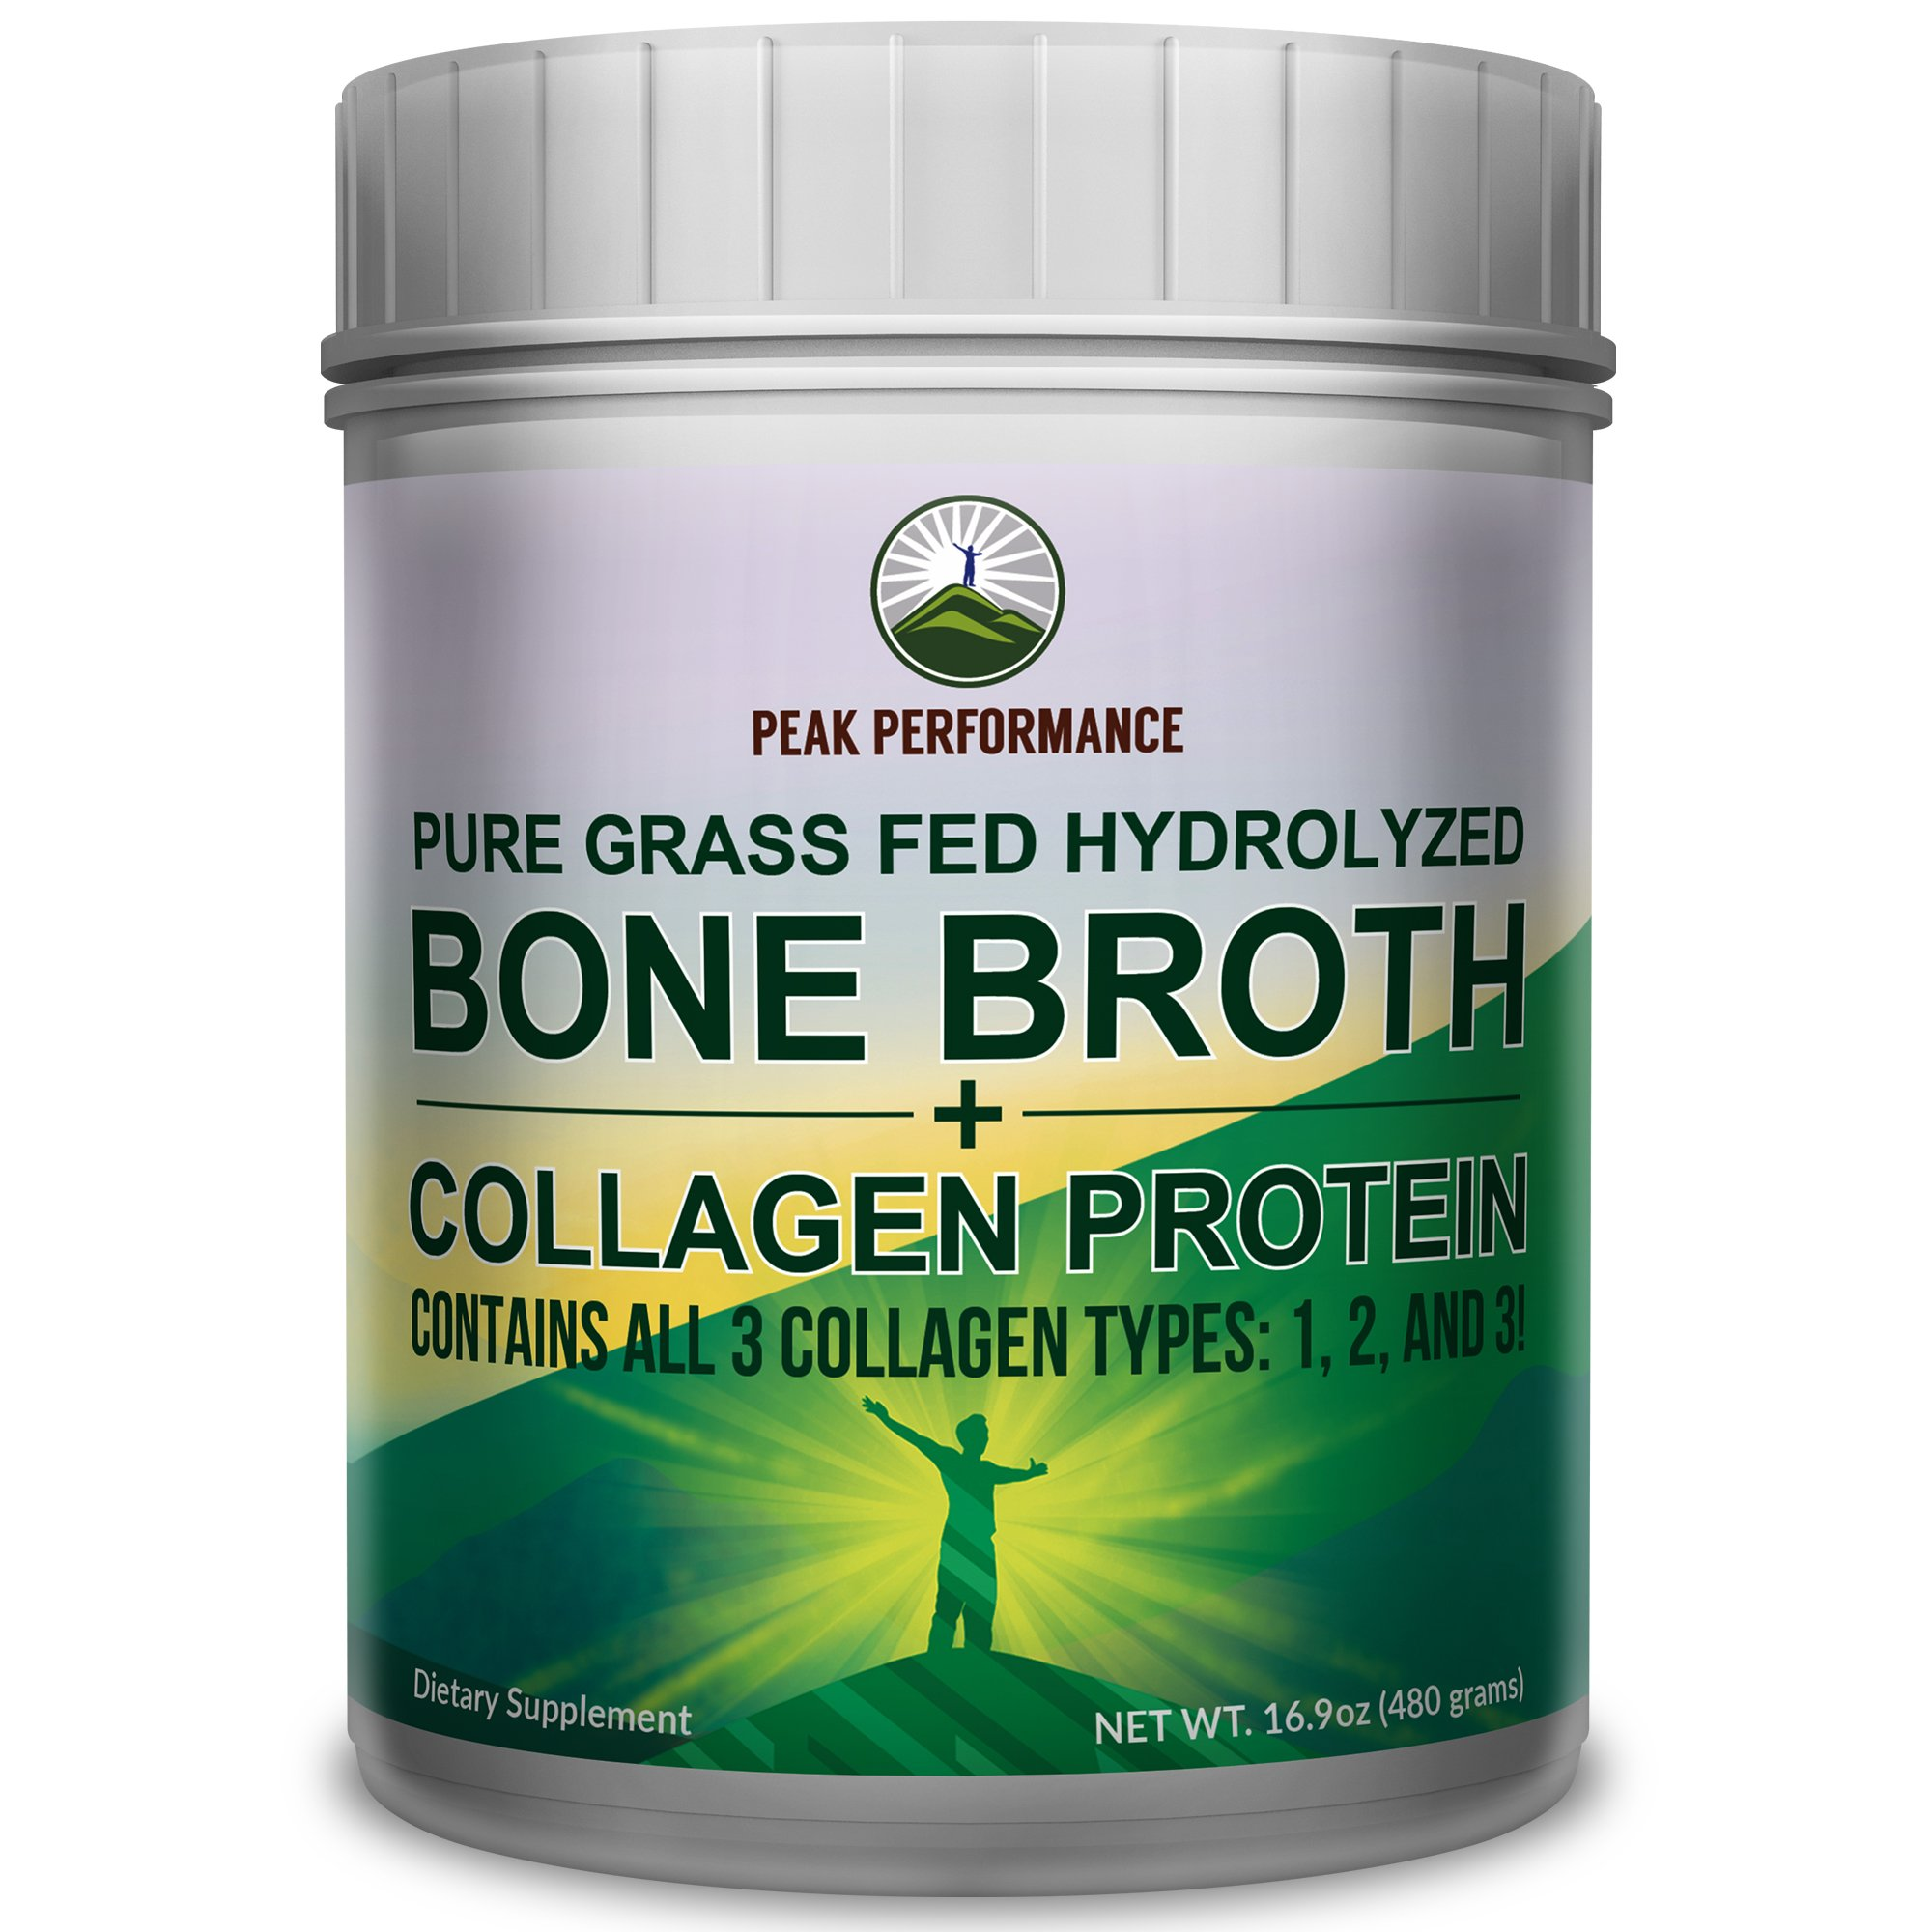 Hydrolyzed Bone Broth + Collagen Protein Peptides Powder By Peak Performance - Contains ALL 3 Collagen Types: 1, 2, and 3 | Pure Pasture, Raised Grass Fed, Paleo Friendly, Gluten & Dairy Free